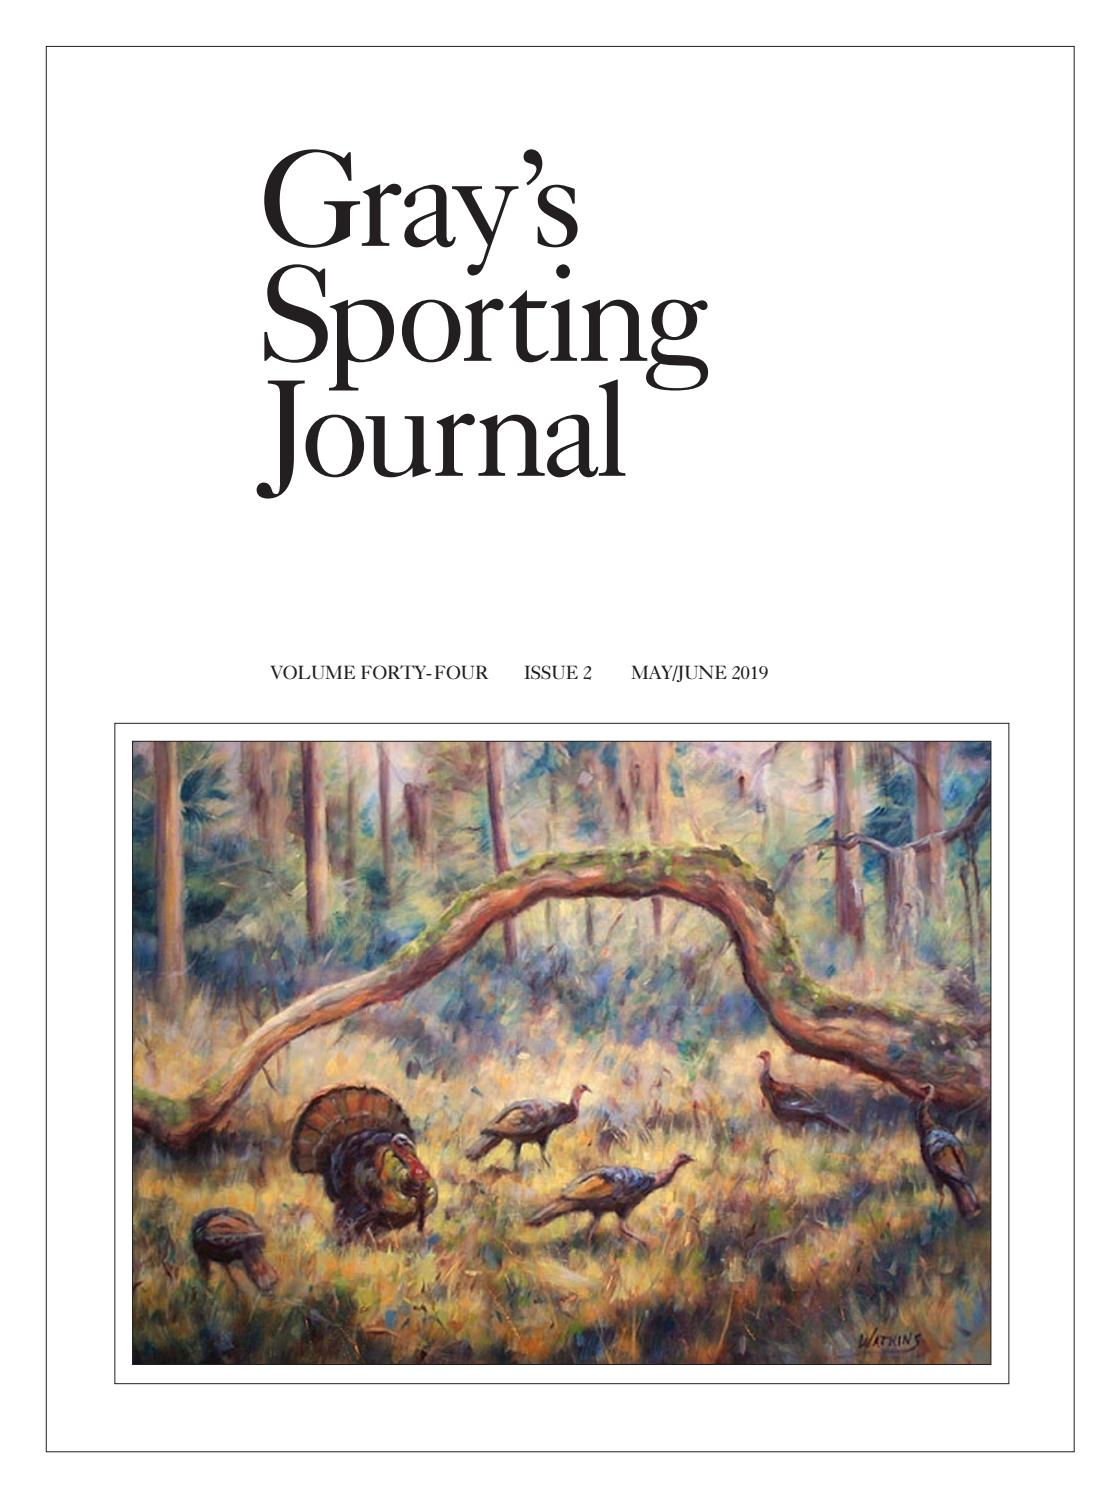 c91ccd89ef Gray's Sporting Journal May/June 2019 by Cowboy Publishing Group - issuu